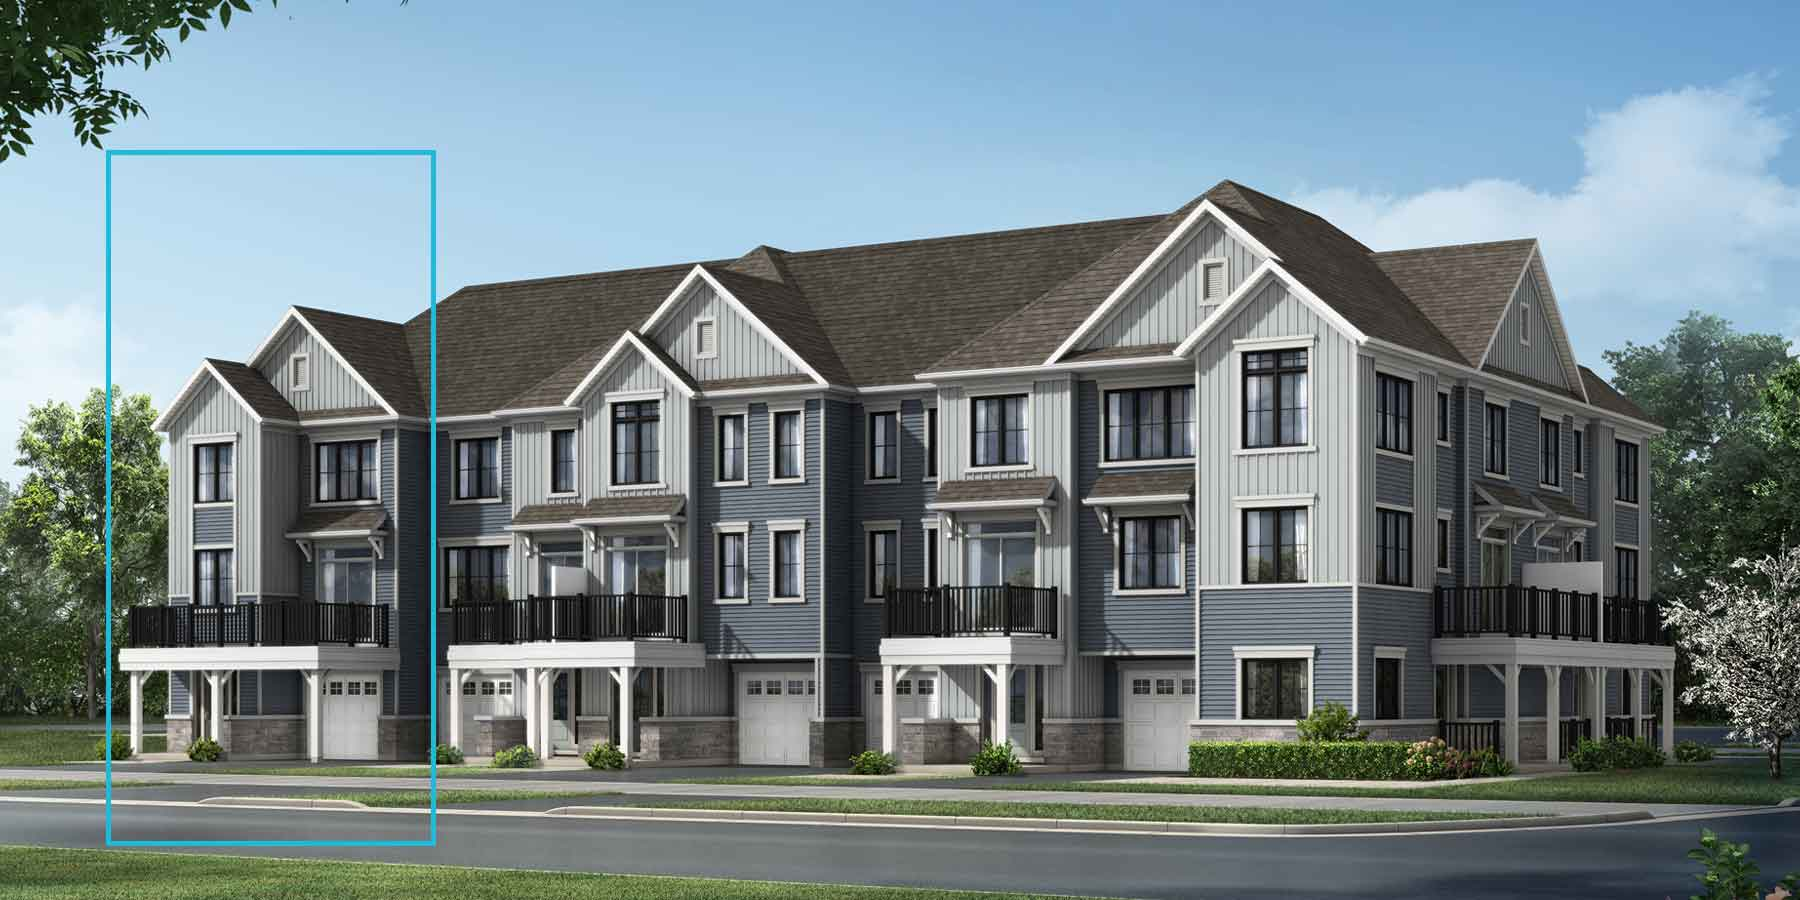 Sandstone End Plan TownHomes at Promenade in Barrhaven Ontario by Mattamy Homes